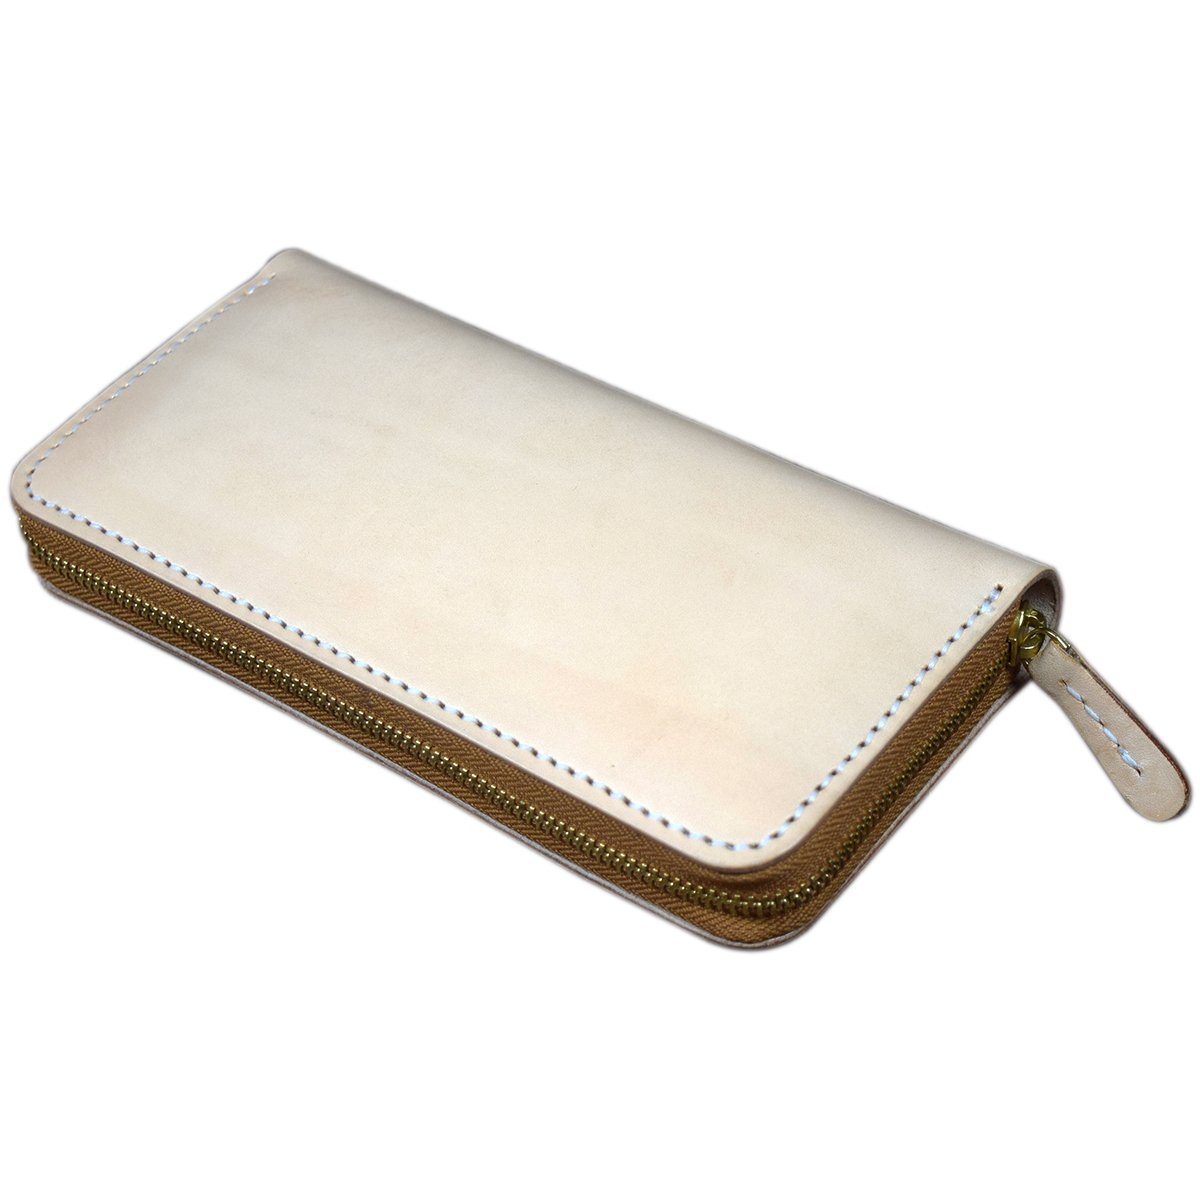 OLG.YAT Vegetable tanned leather Retro Genuine Leather Durable Slim Wallets OLG-WLYS2